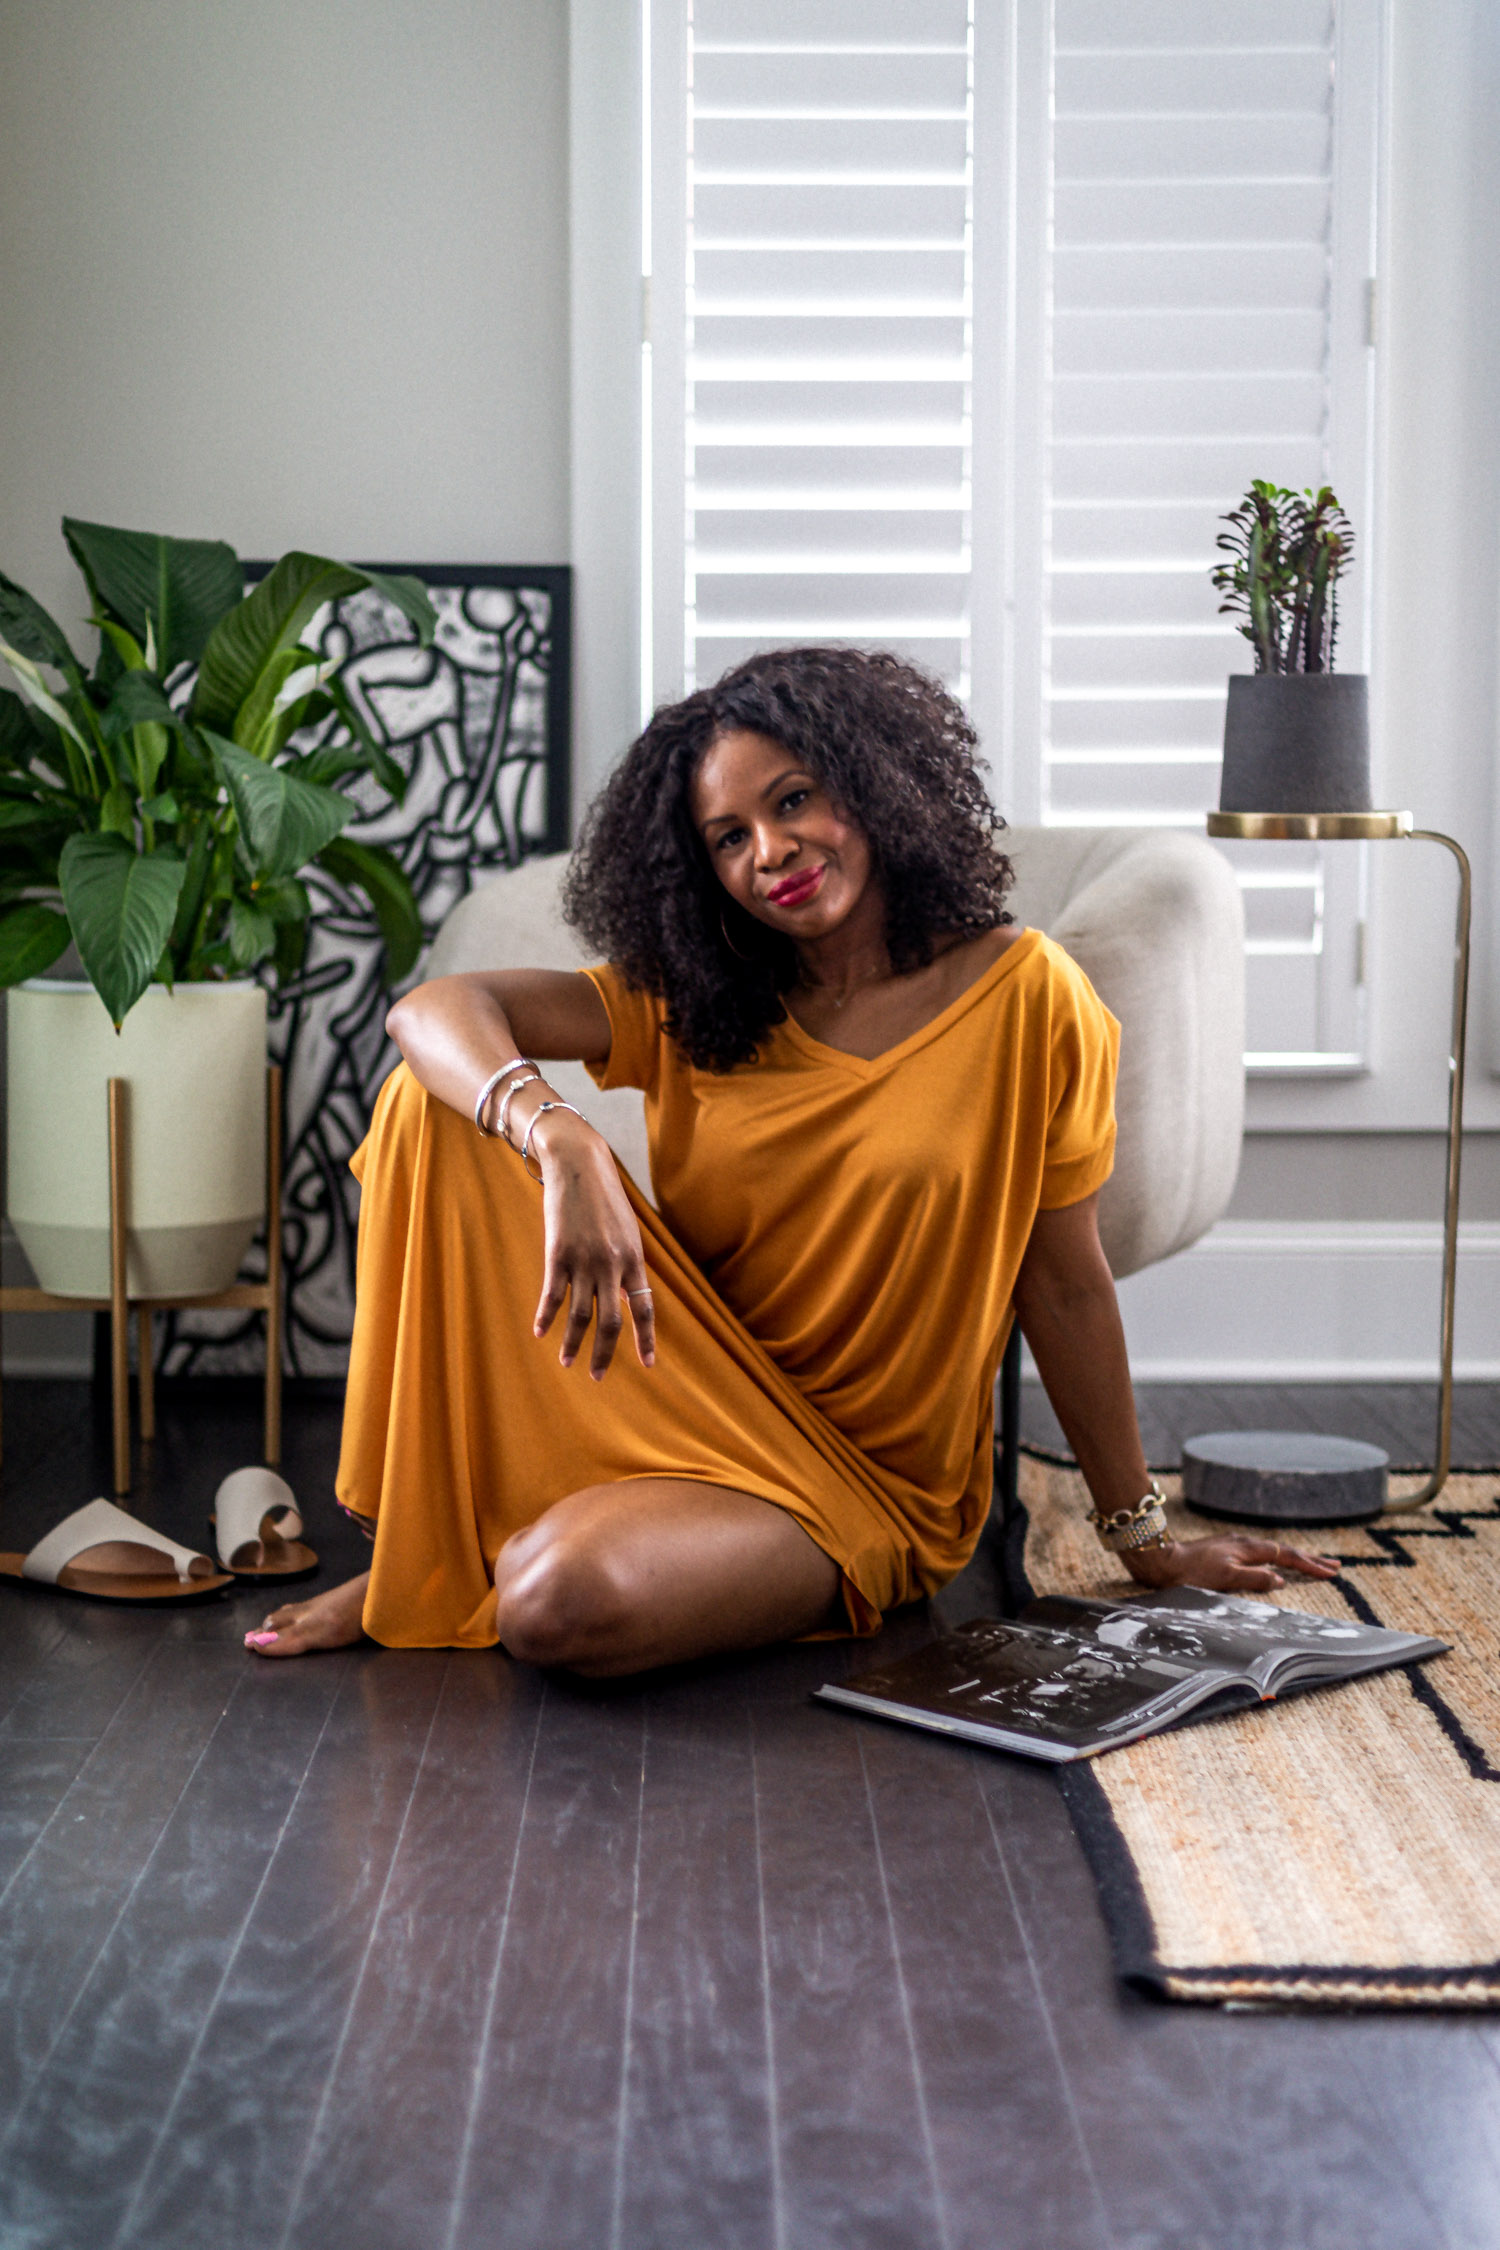 atlanta fashion blogger wearing loungewear dresses for summer, how to style your loungewear, how to style a loungewear dress, loungewear, how to look cute in loungewear, the best loungewear to wear at home, wrap dress, outfit inspiration, loungewear outfit inspiration, orange dress, orange lounge dress